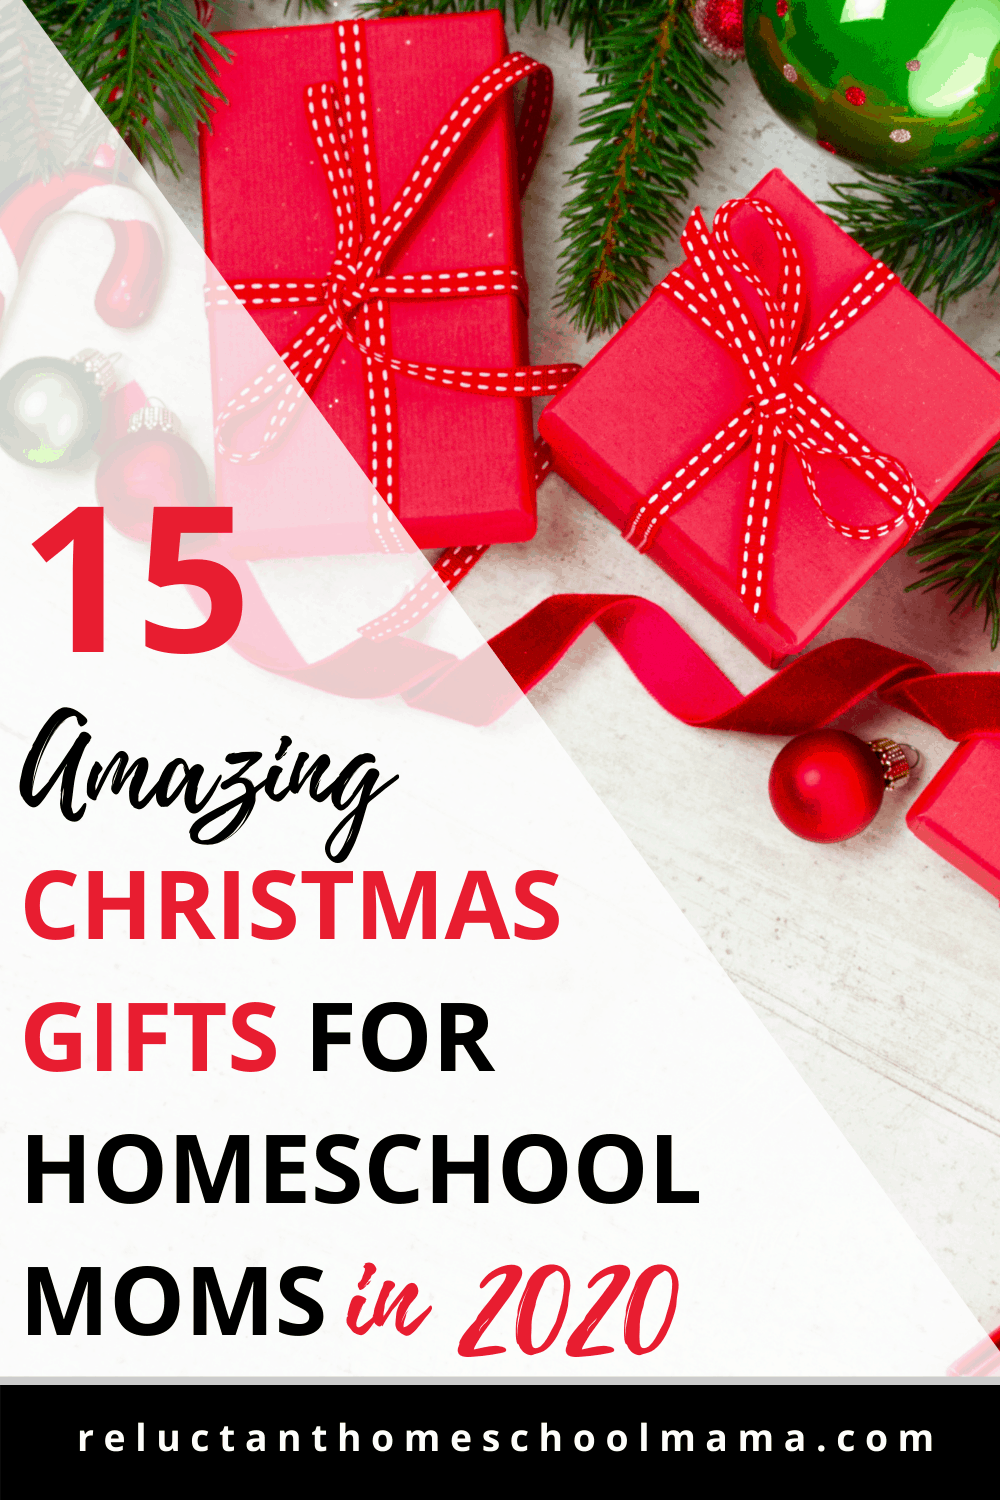 15 Amazing Christmas Gifts for Homeschool Moms in 2020